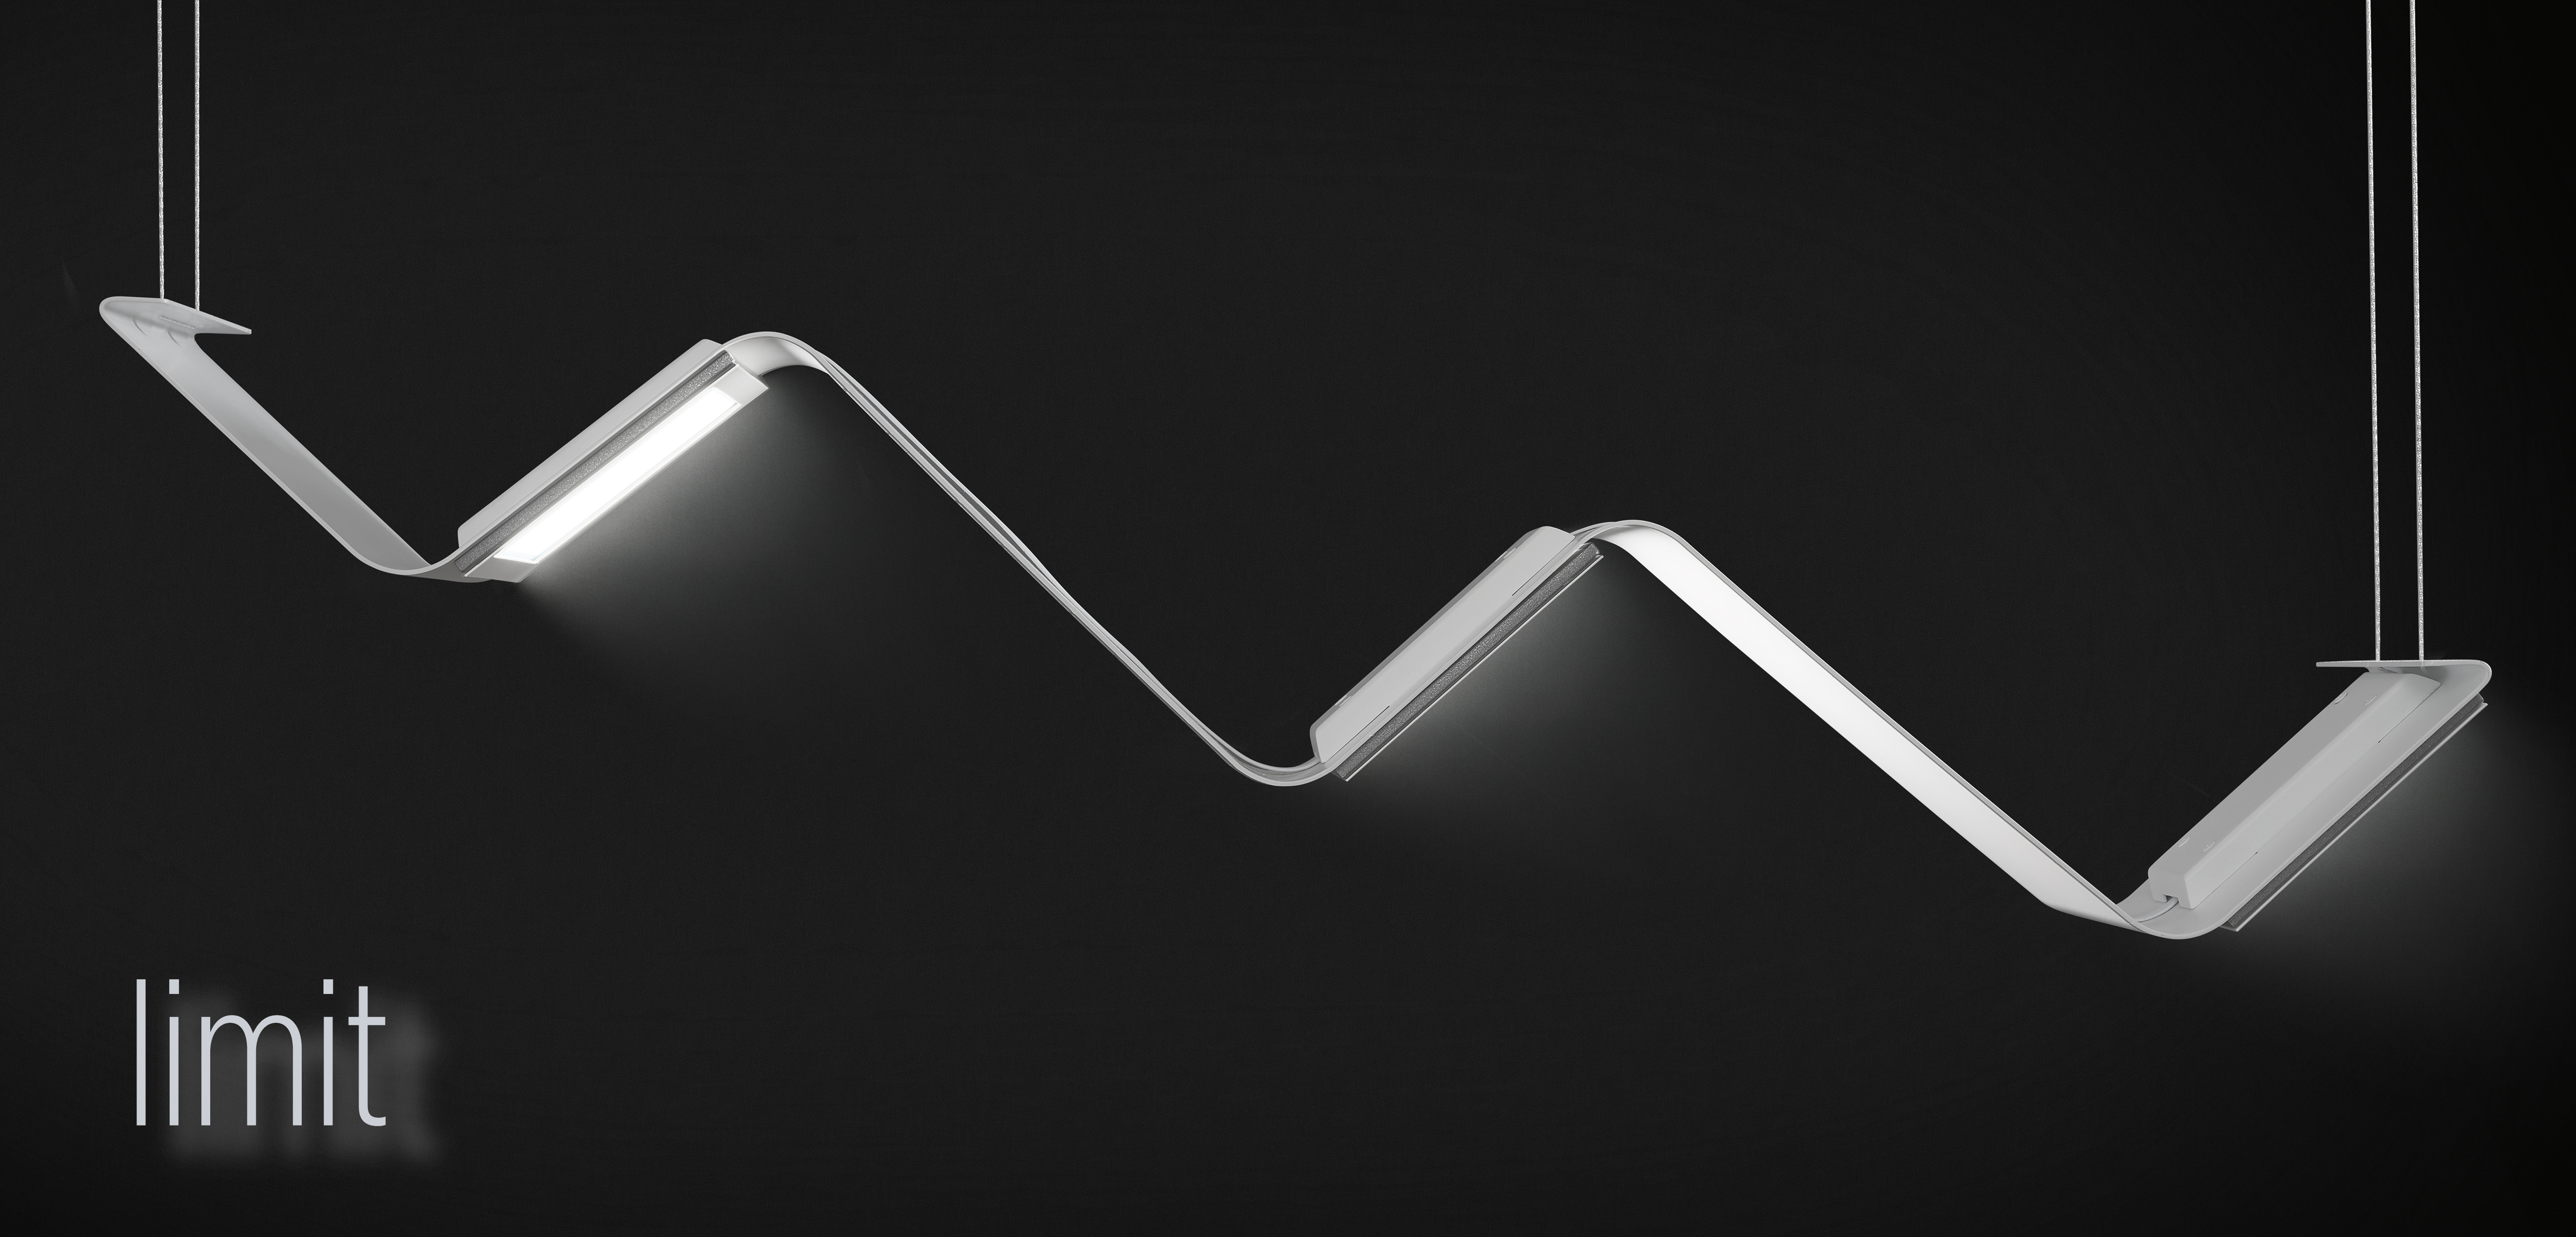 Limit, an OLED architectural lighting pendant, showing it's zig-zag shape over a black background